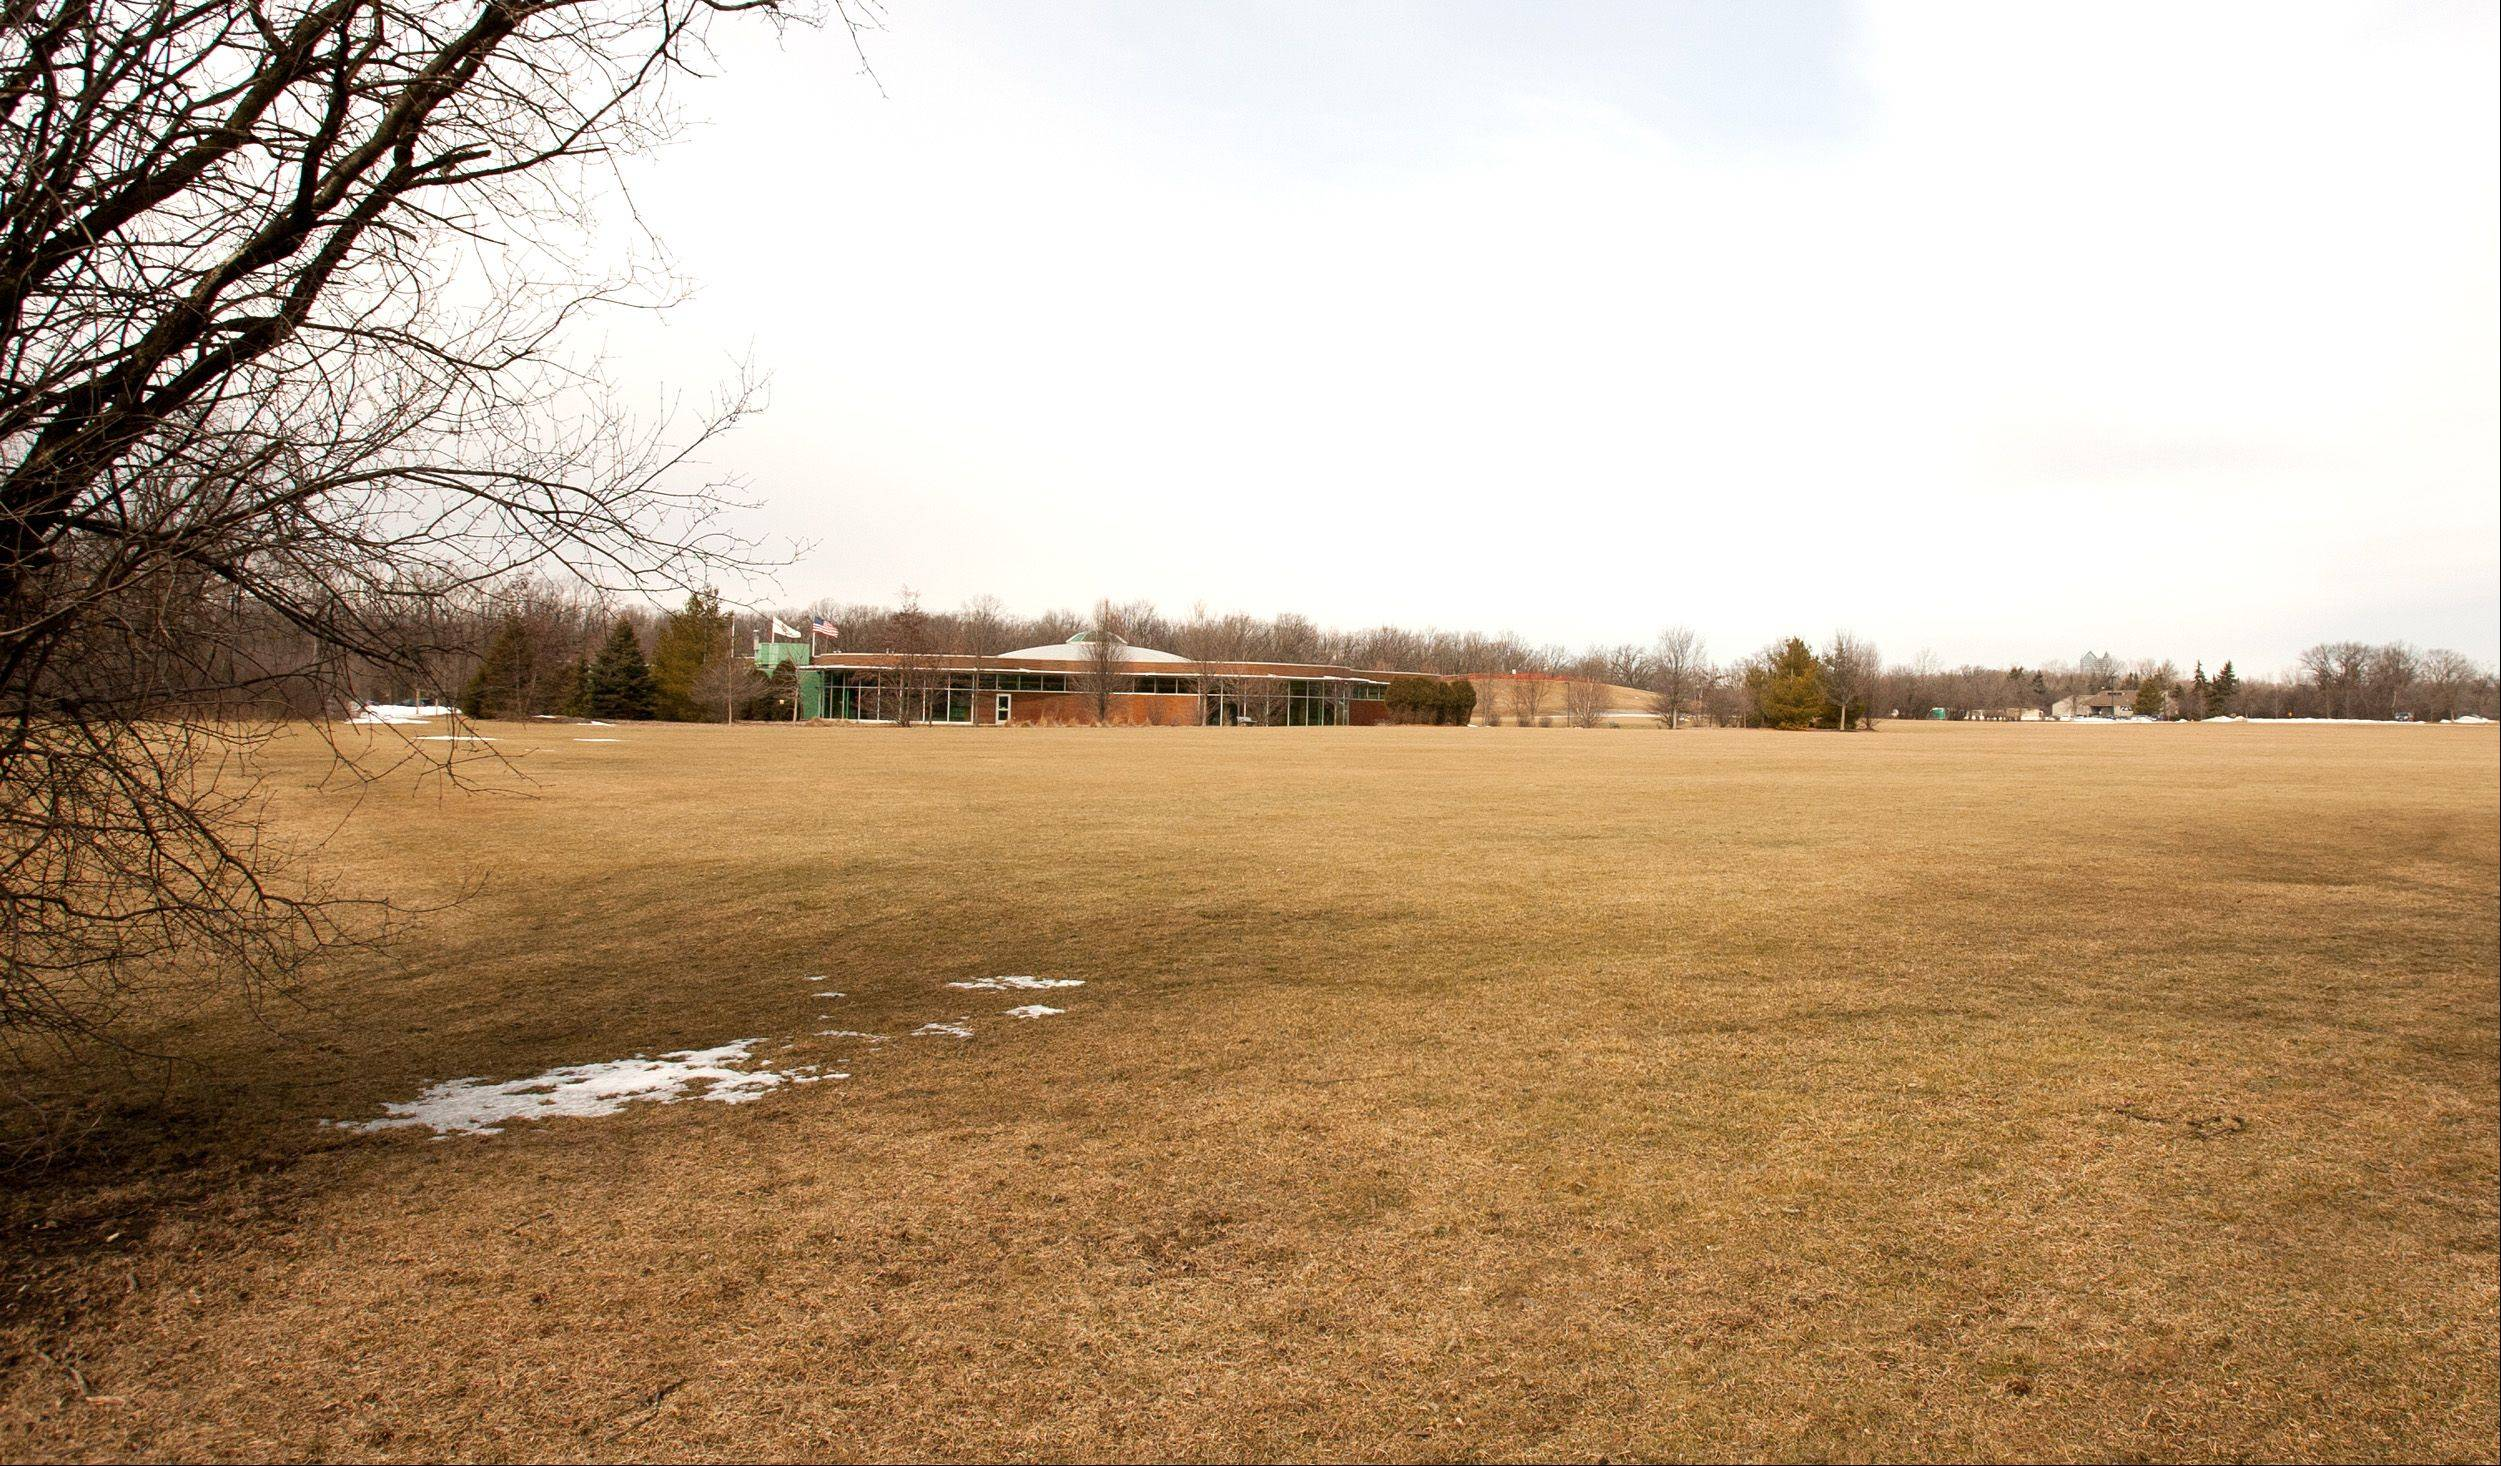 The proposed site of the new school Butler Elementary District 53 wants to build is just east of the Oak Brook Public Library, along 31st Street on village-owned Sports Core land. Voters in the April 9 election will be asked whether 8.5 acres of the land should be sold to allow construction of the school.